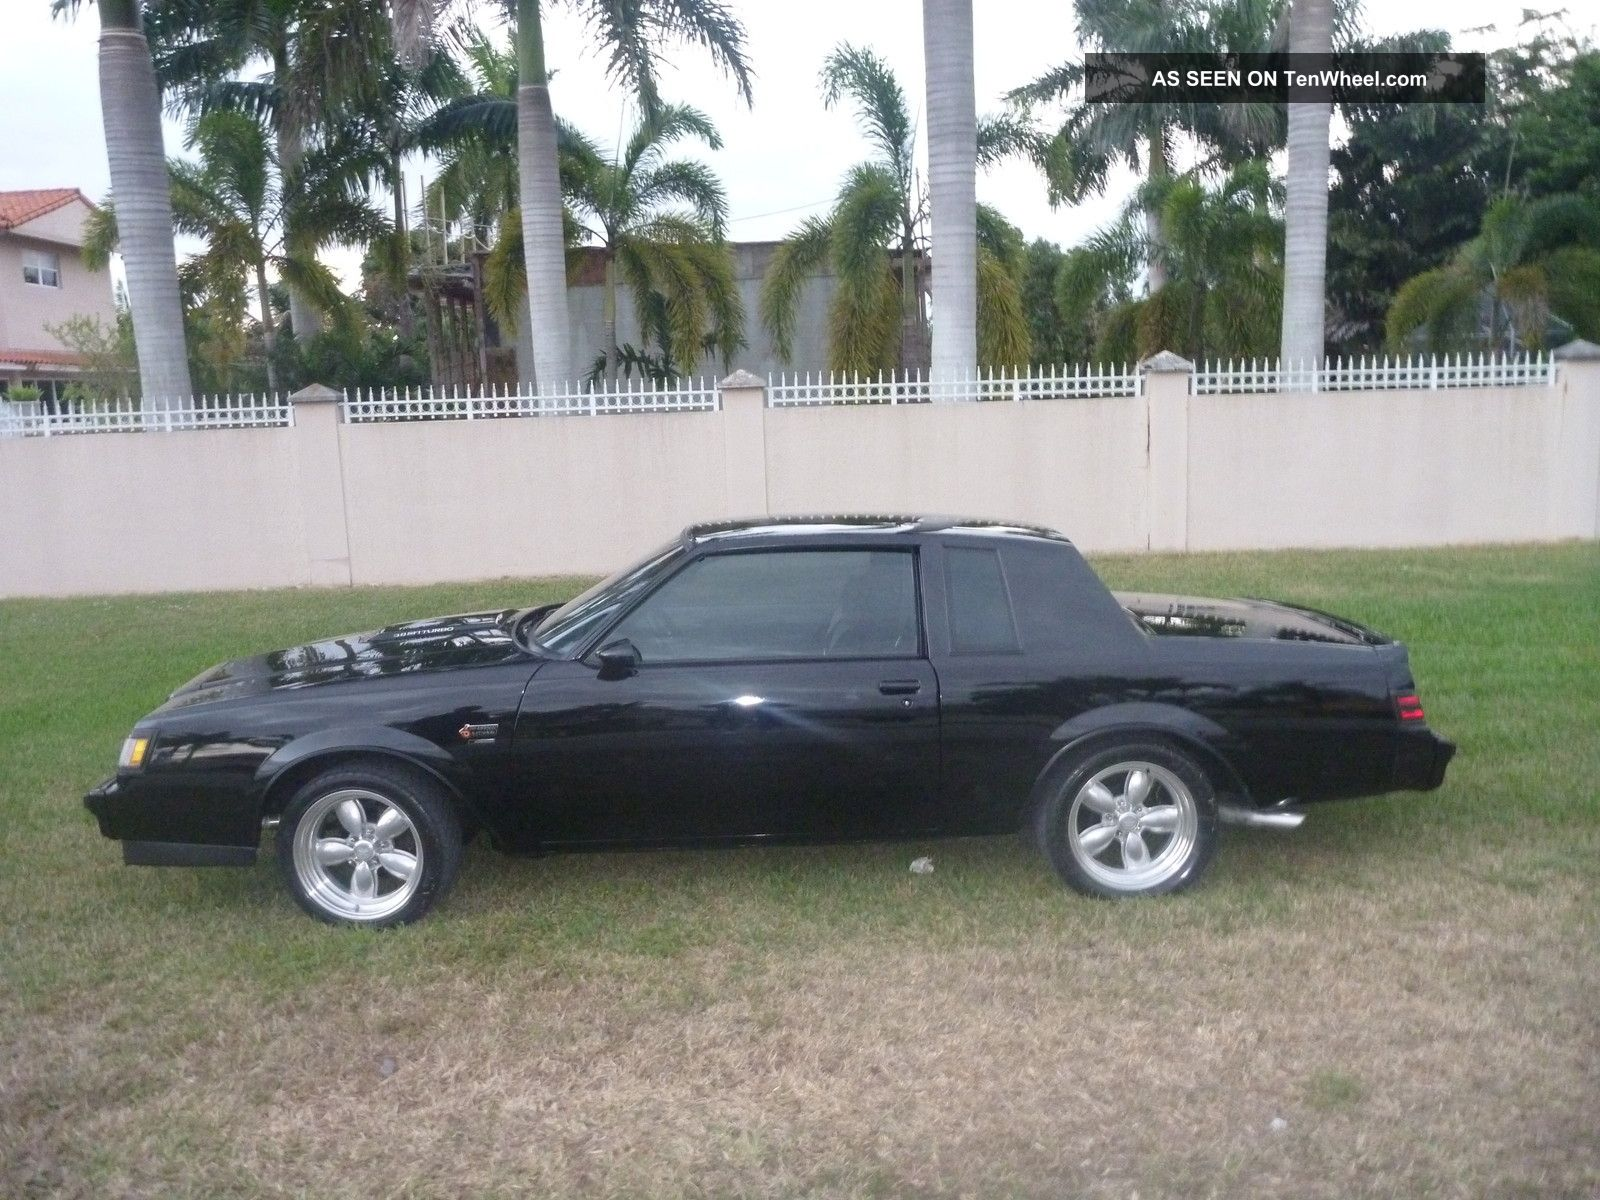 1987 Buick Grand National Grand National photo